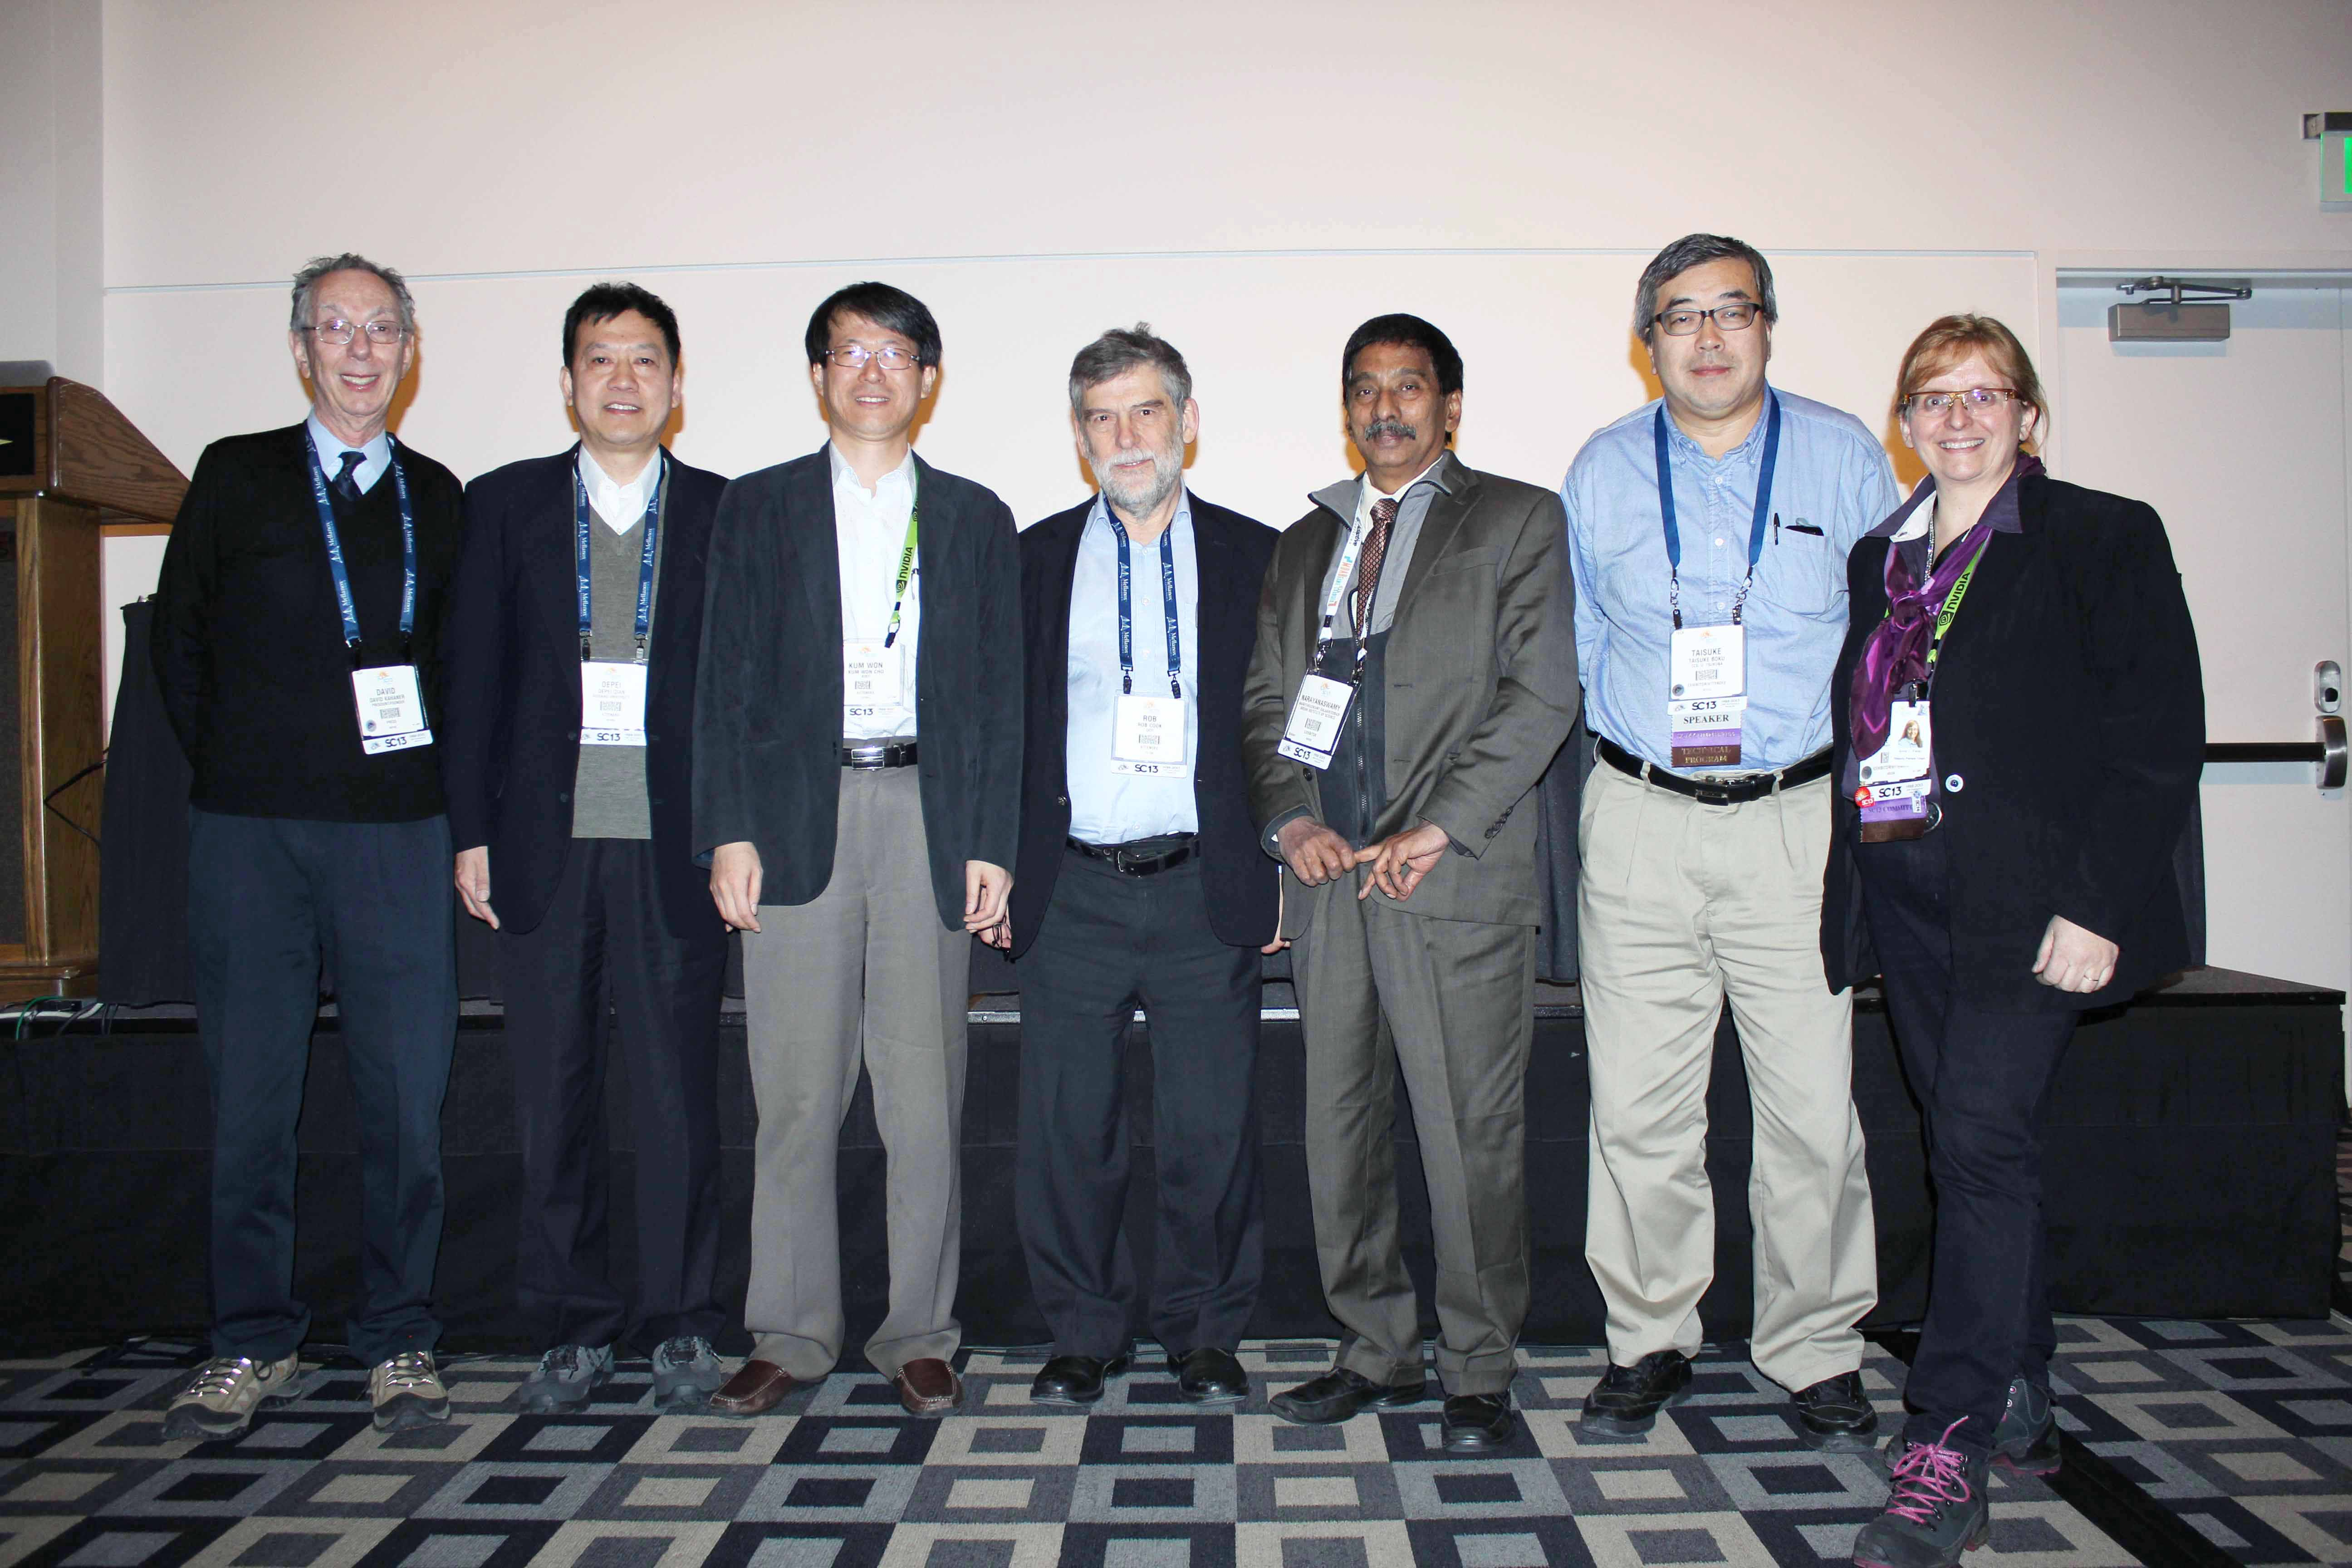 ATIP Panel at SC13. From left to right: ATIP's Dr. David KAHANER (Moderator), Prof. Depei QIAN (Beihang University, China), Dr. Kum Won CHO ( National Institute of Supercomputing & Networking, South Korea), Rob COOK (Queensland Cyber Infrastructure Foundation, Australia), Prof. N. BALAKRISHNAN (Indian Institute of Science, India), Prof. Taisuke BOKU (University of Tsukuba, Japan), and Panel Organizer Dr. Anne C. ELSTER, Director of the Heterogeneous and Parallel Computing Lab (HPC-Lab) at the Norwegian University of Science and Technology (NTNU)